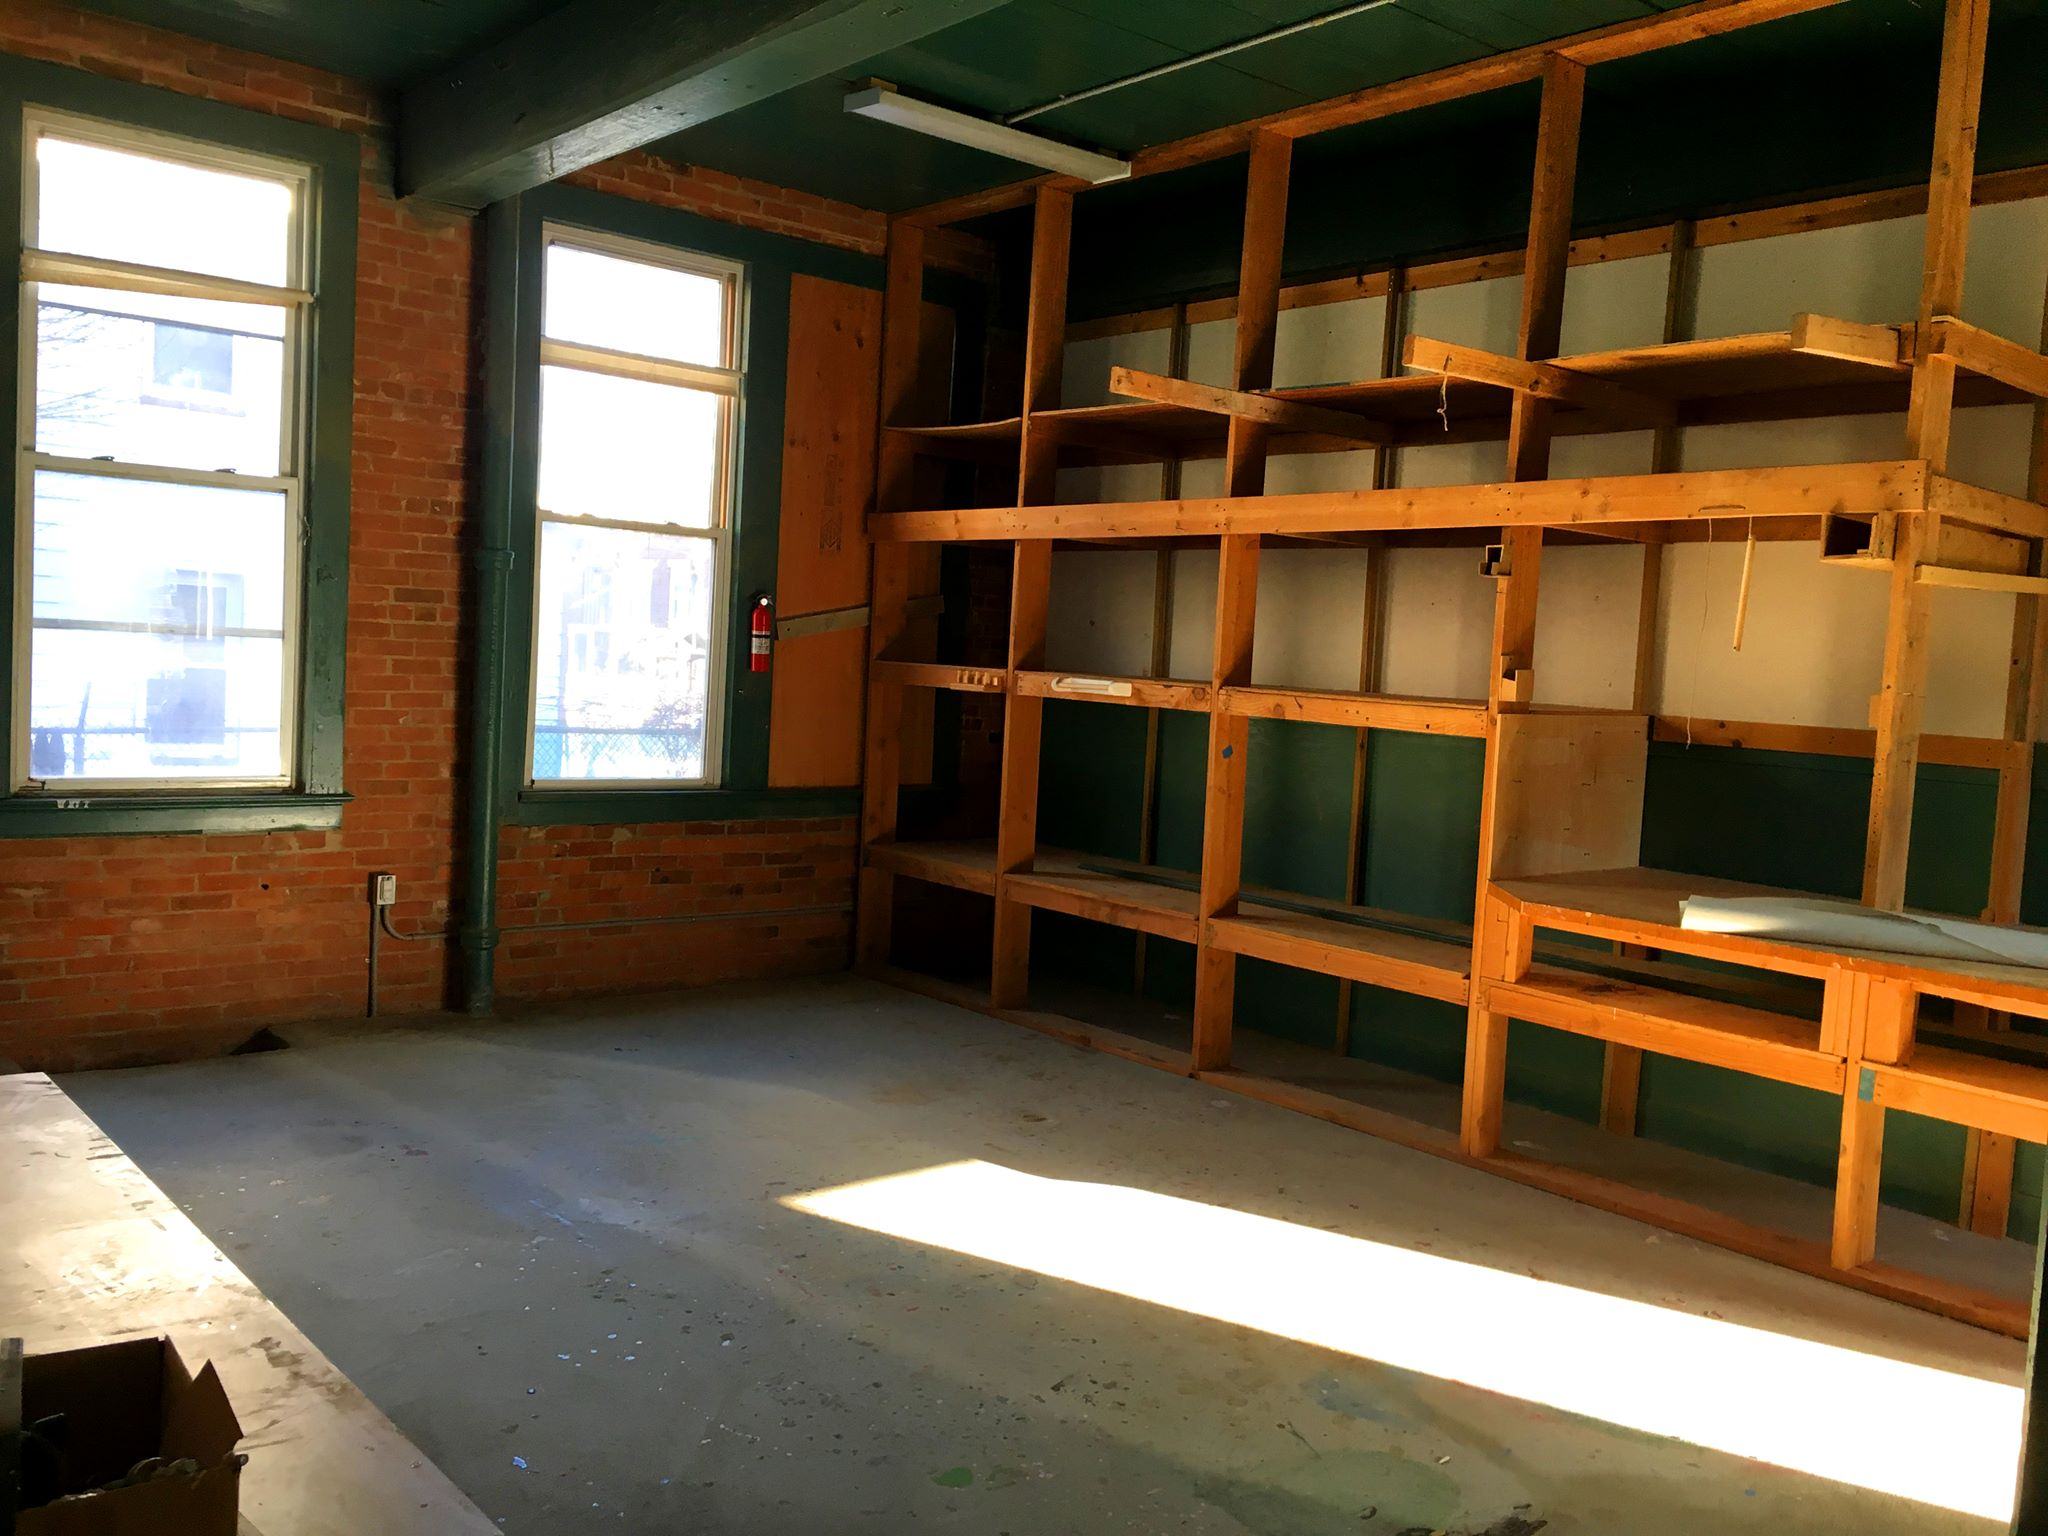 Warehouse for rent in bridgeport ct commercial space for lease bridgeport innovation center - Small commercial rental space photos ...